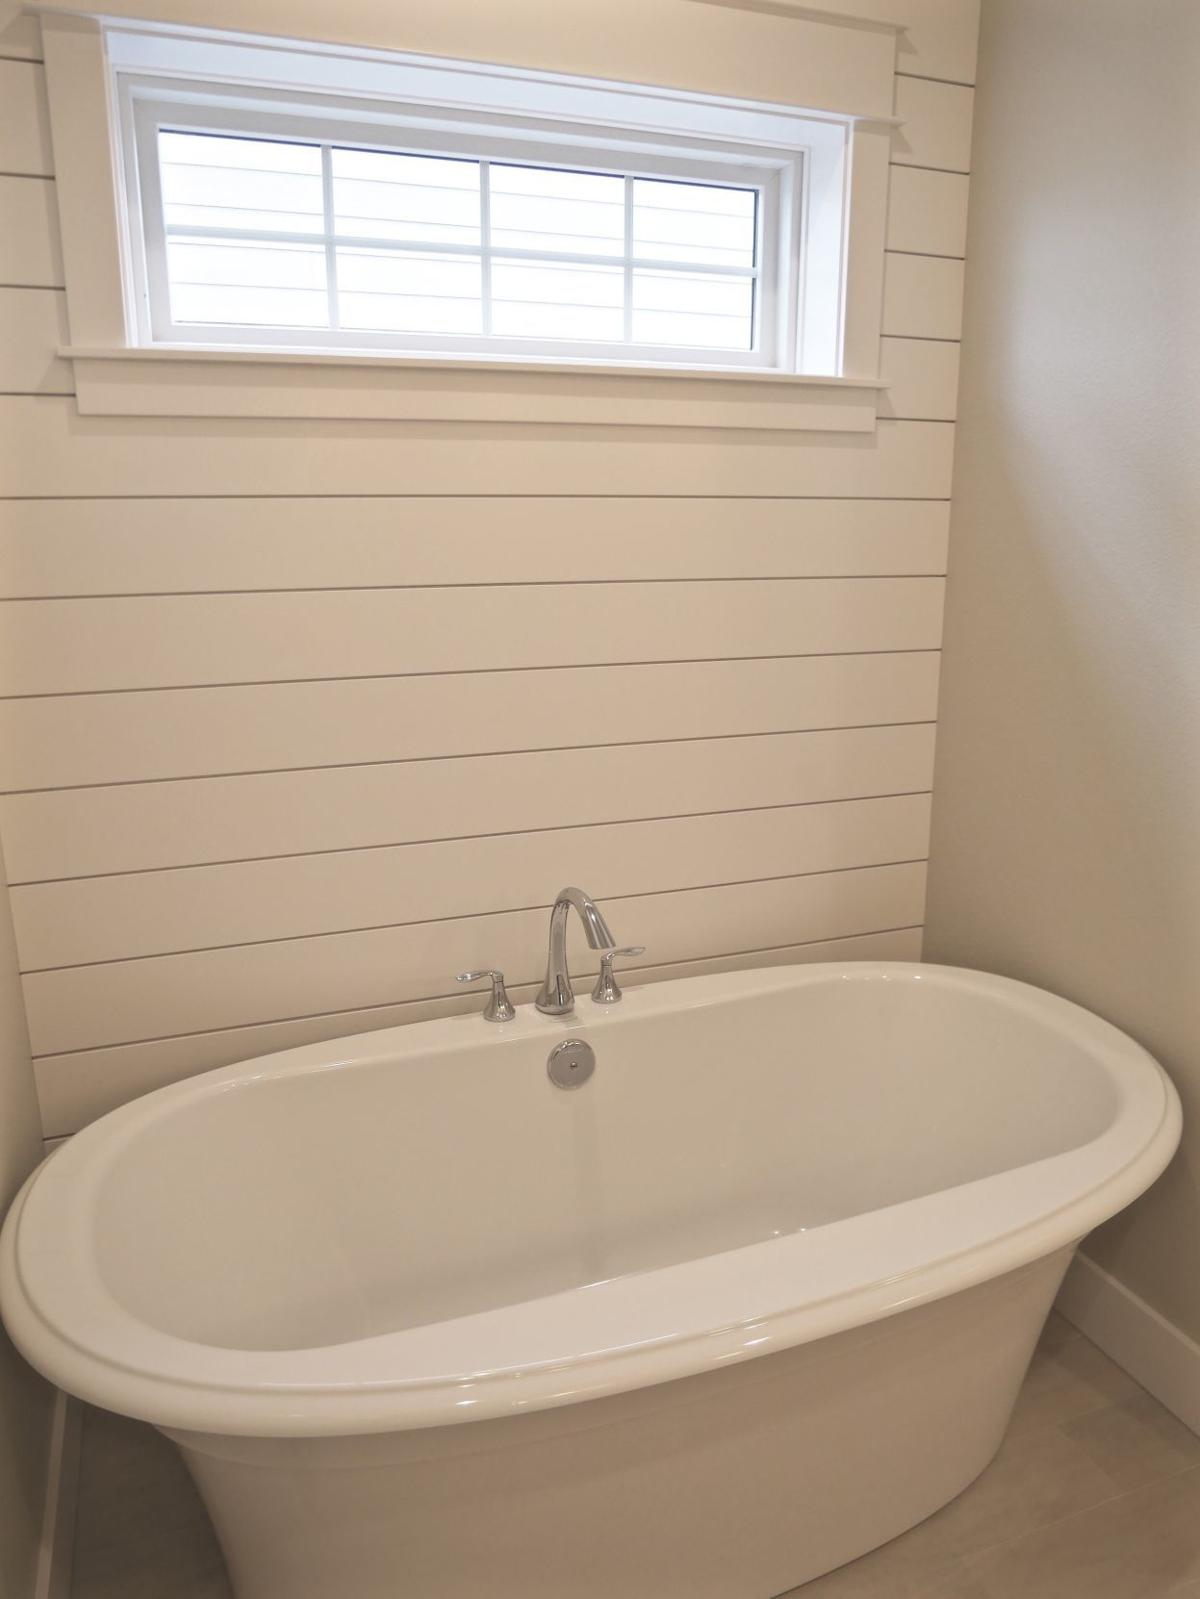 Using shiplap behind a stand-alone tub